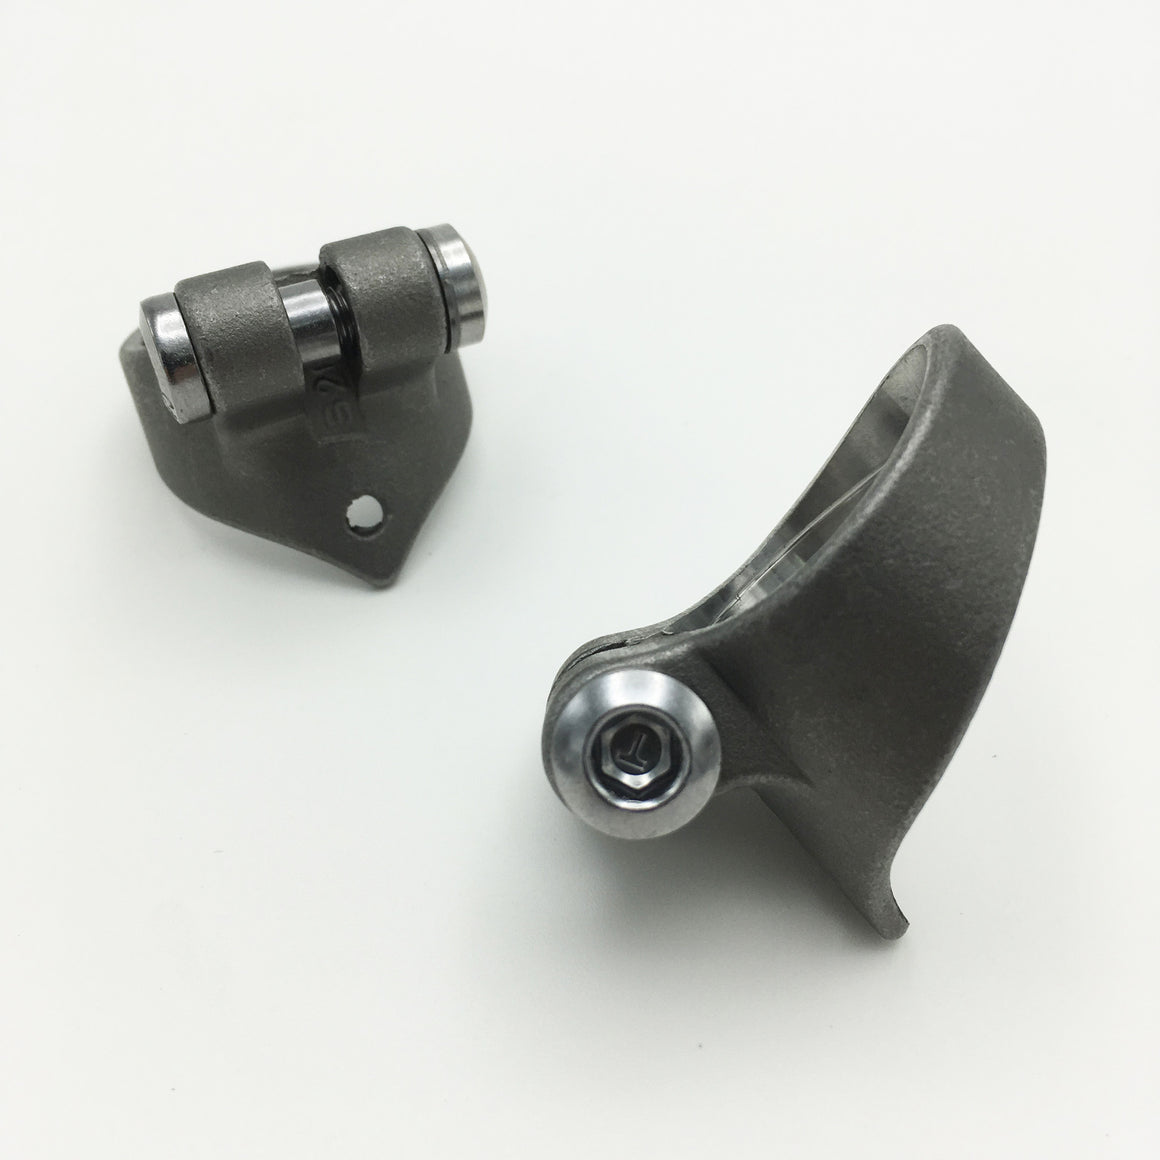 Braze-on seat collar lug for 31.8 seat tube